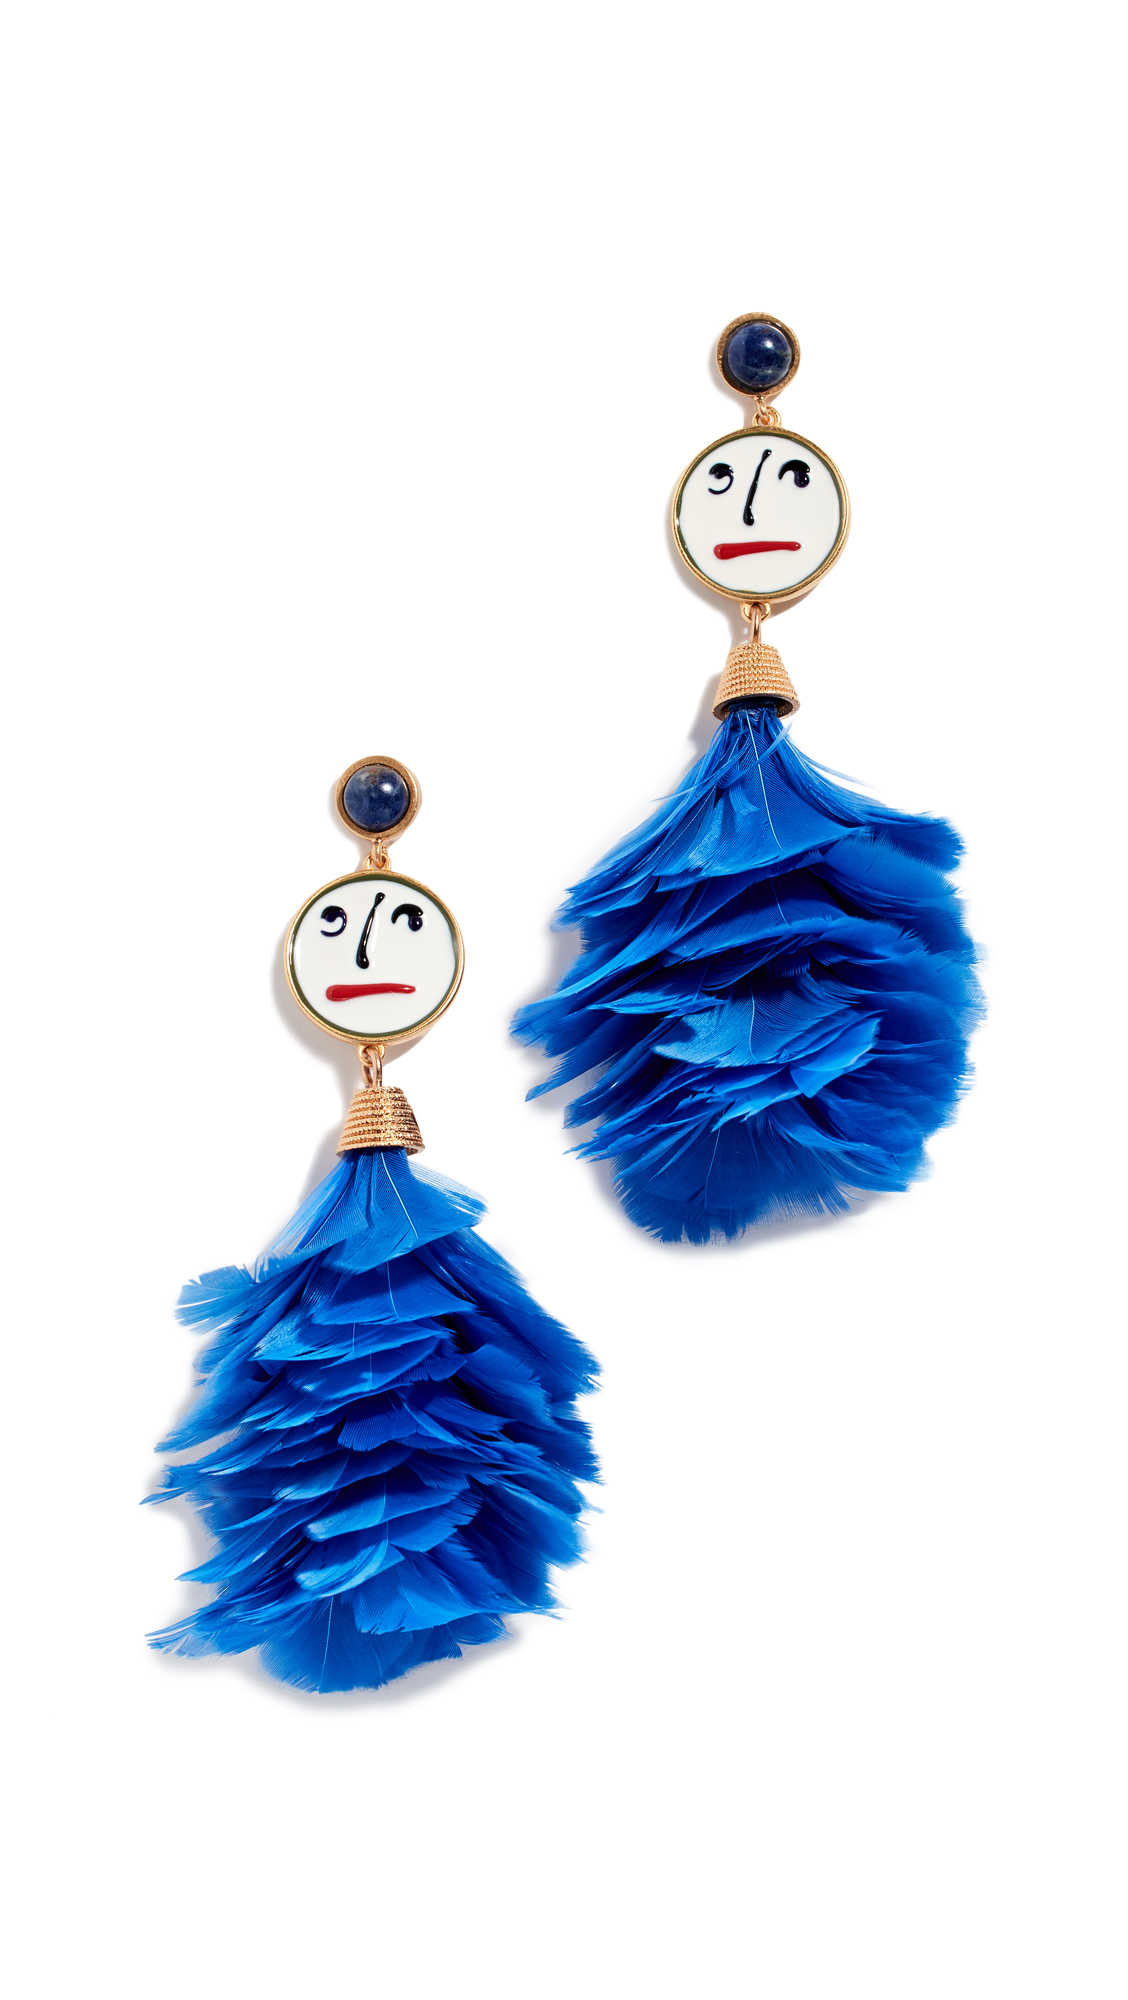 Tory Burch Conversational Feather Drop Earrings - Vintage Gold/Cobalt Blue